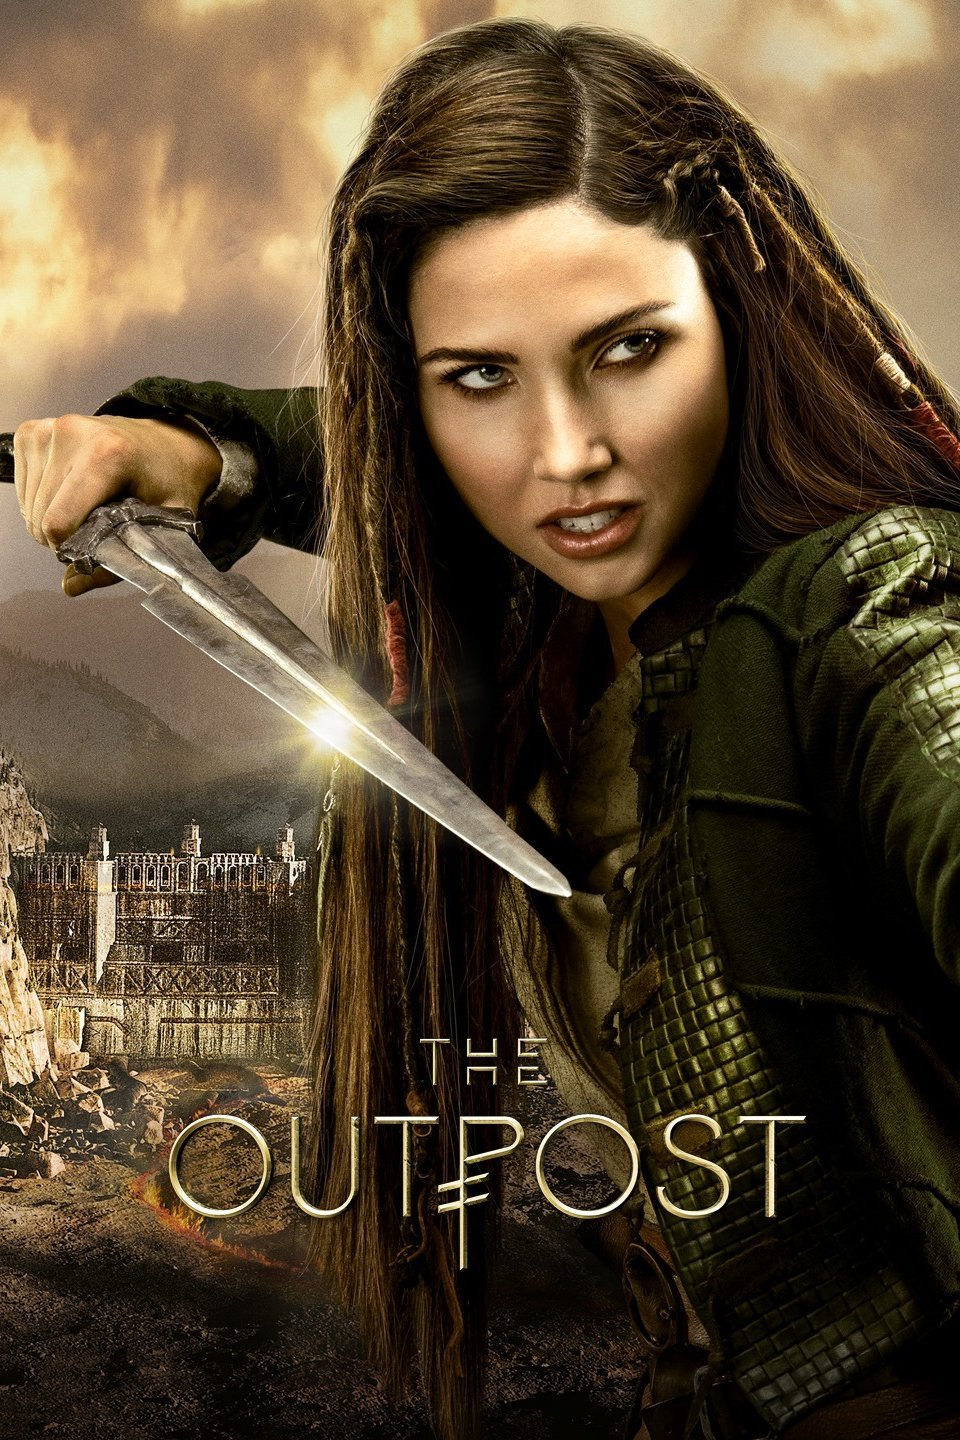 The Outpost Season 1 Download HDTV (Episode 5 Added)